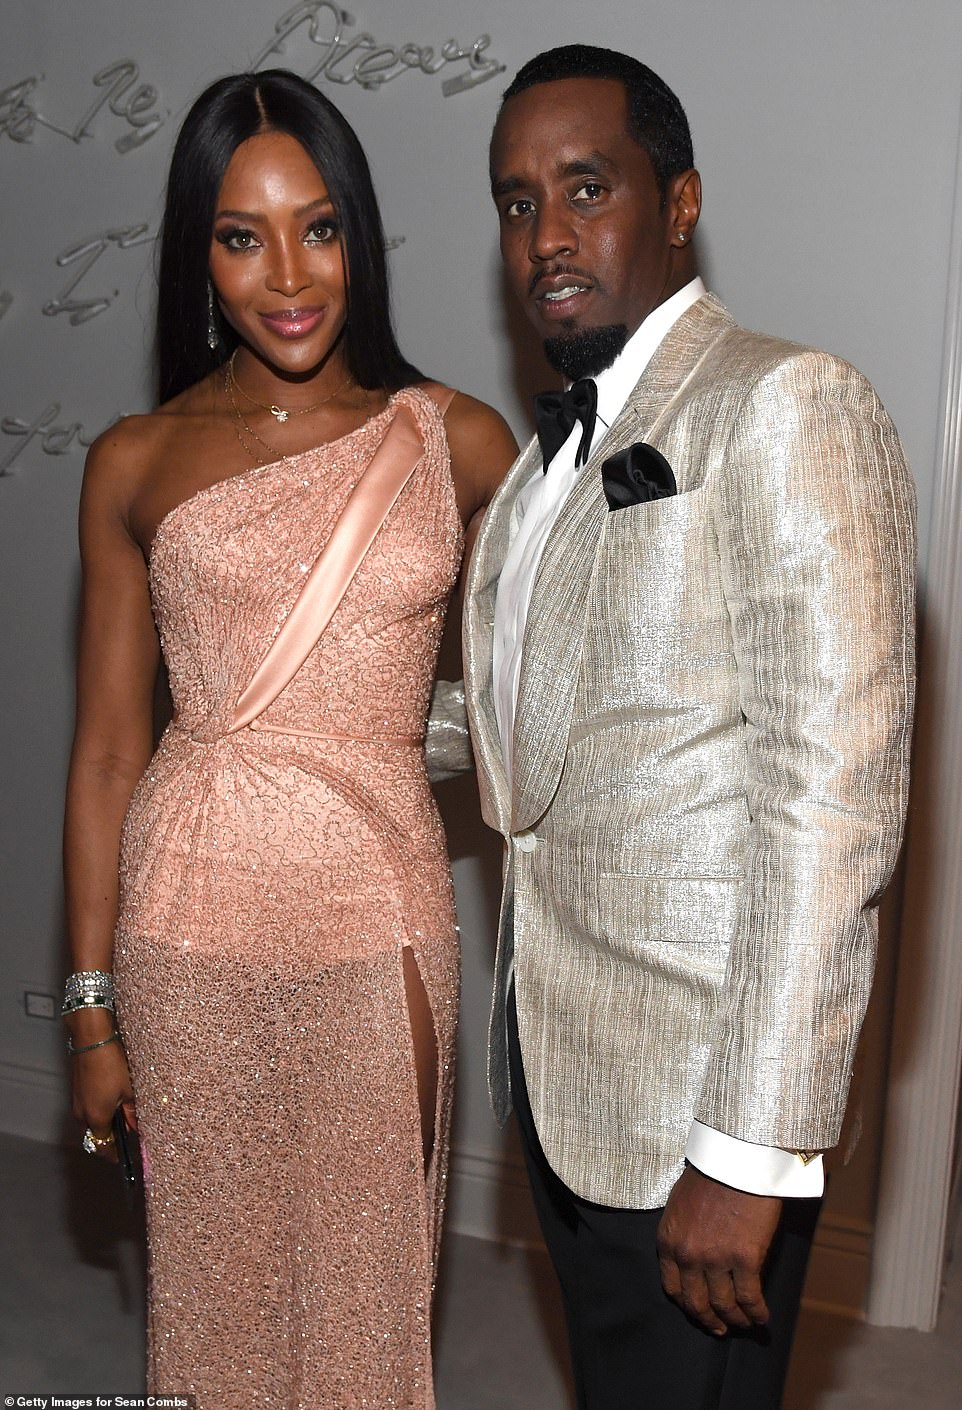 Kim Kardashian leads the glamour at Diddy's belated 50th